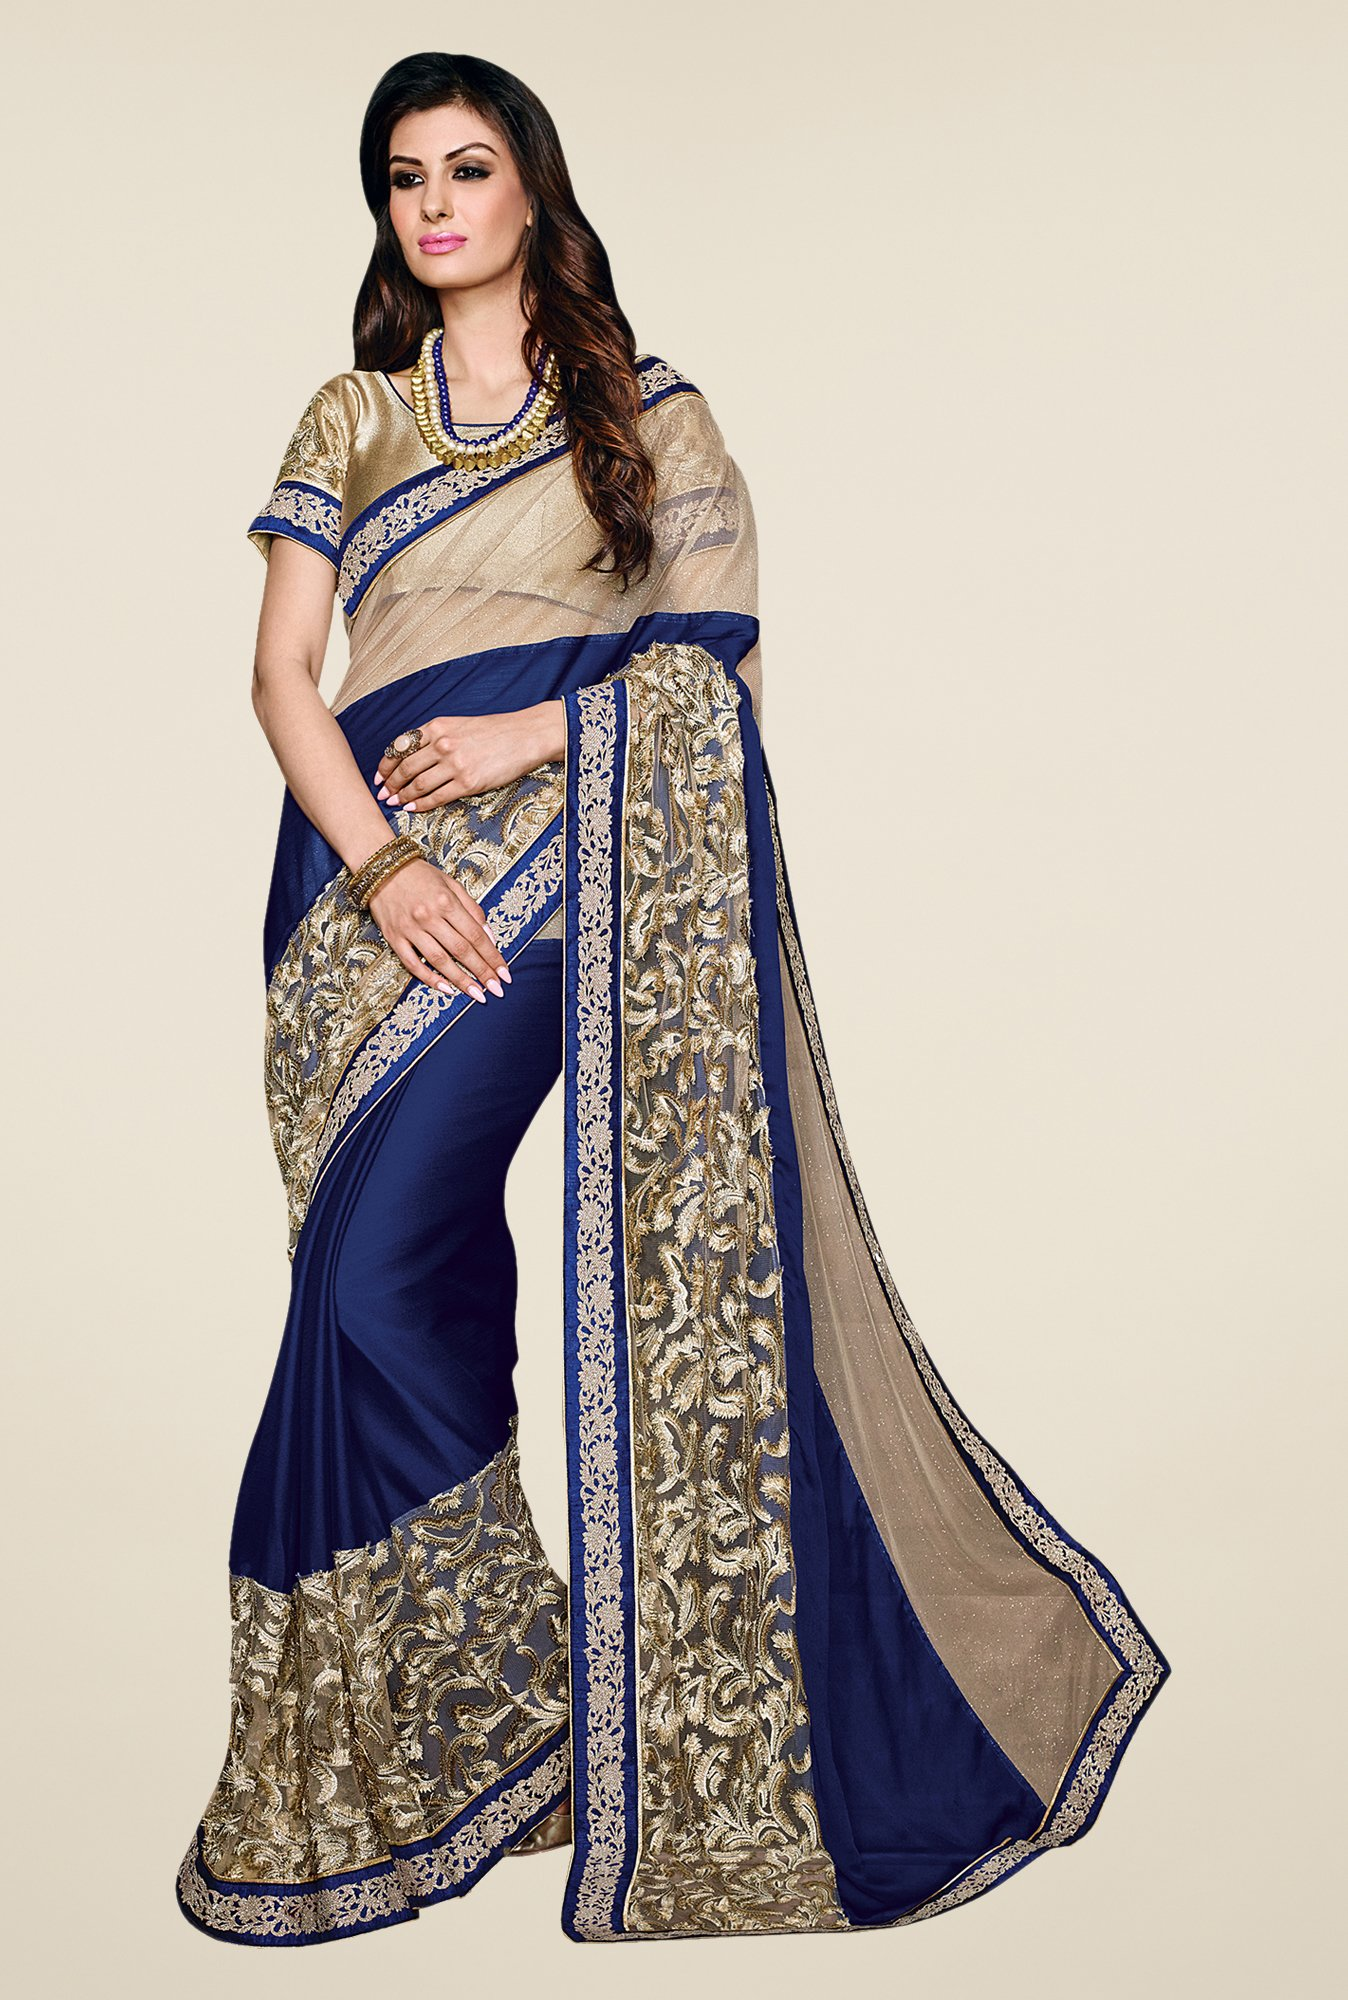 Shonaya Blue & Beige Satin Georgette & Lycra Saree